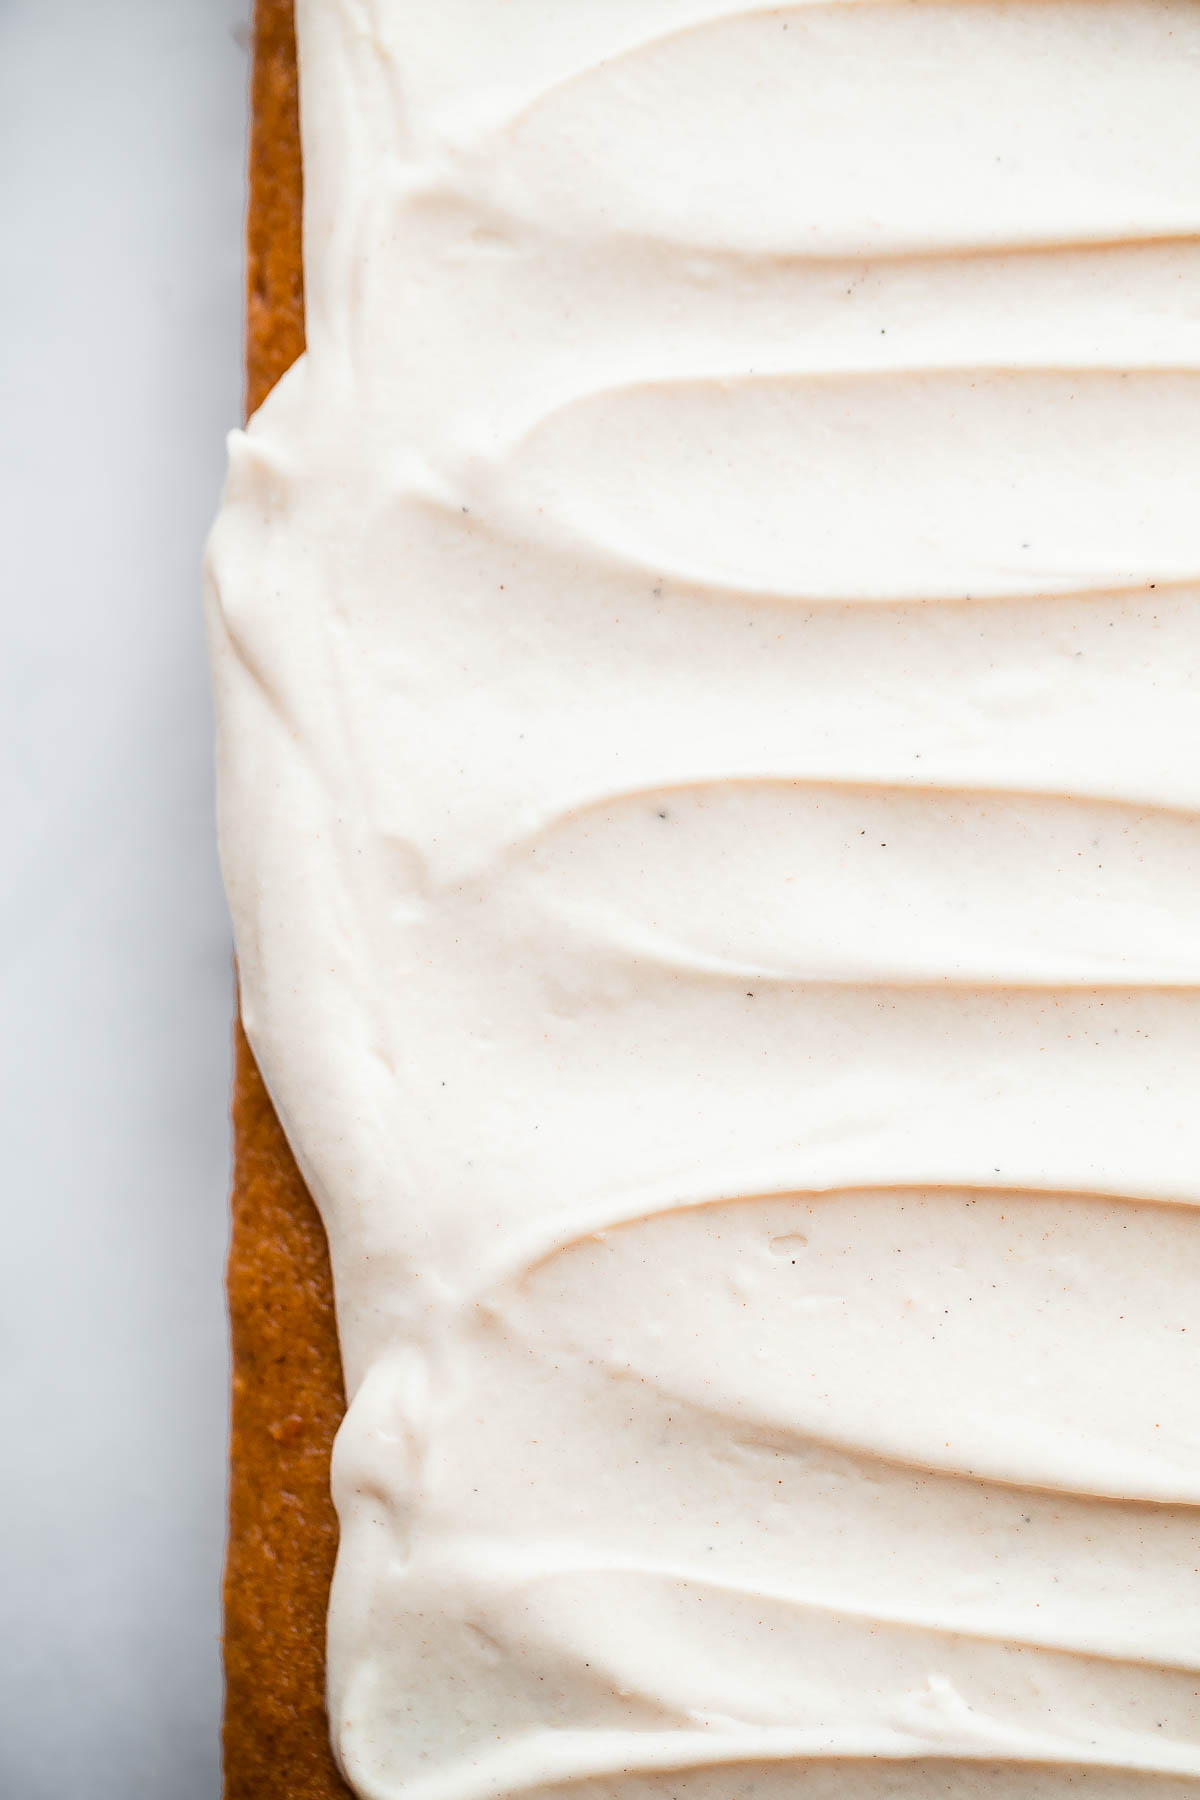 Pumpkin Sheet Cake. A RICH, decadent pumpkin cake topped with spiced cream cheese frosting!